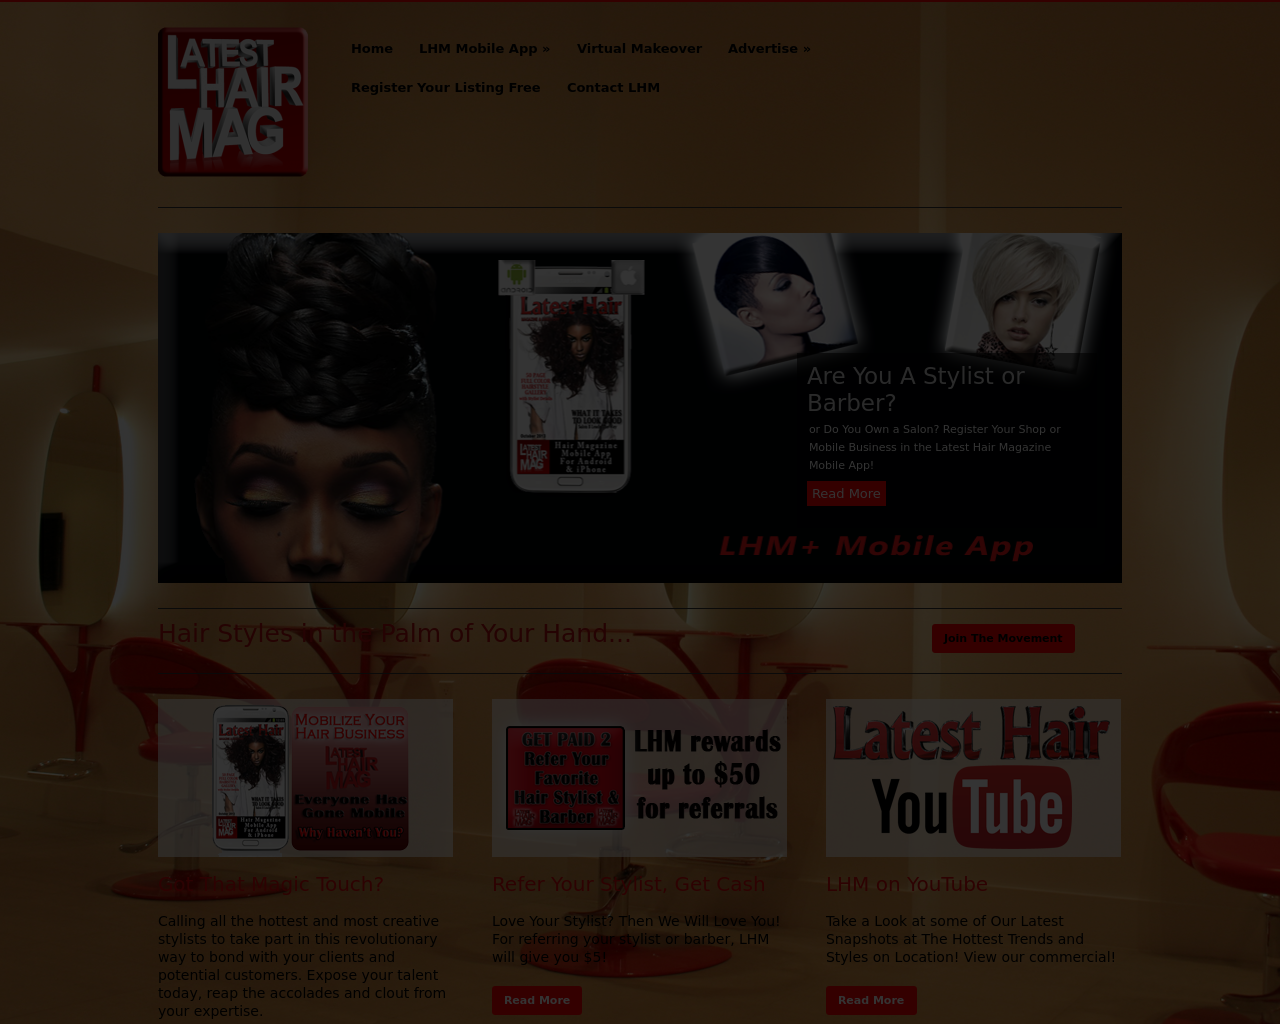 Latest-Hair-Mag-Advertising-Reviews-Pricing